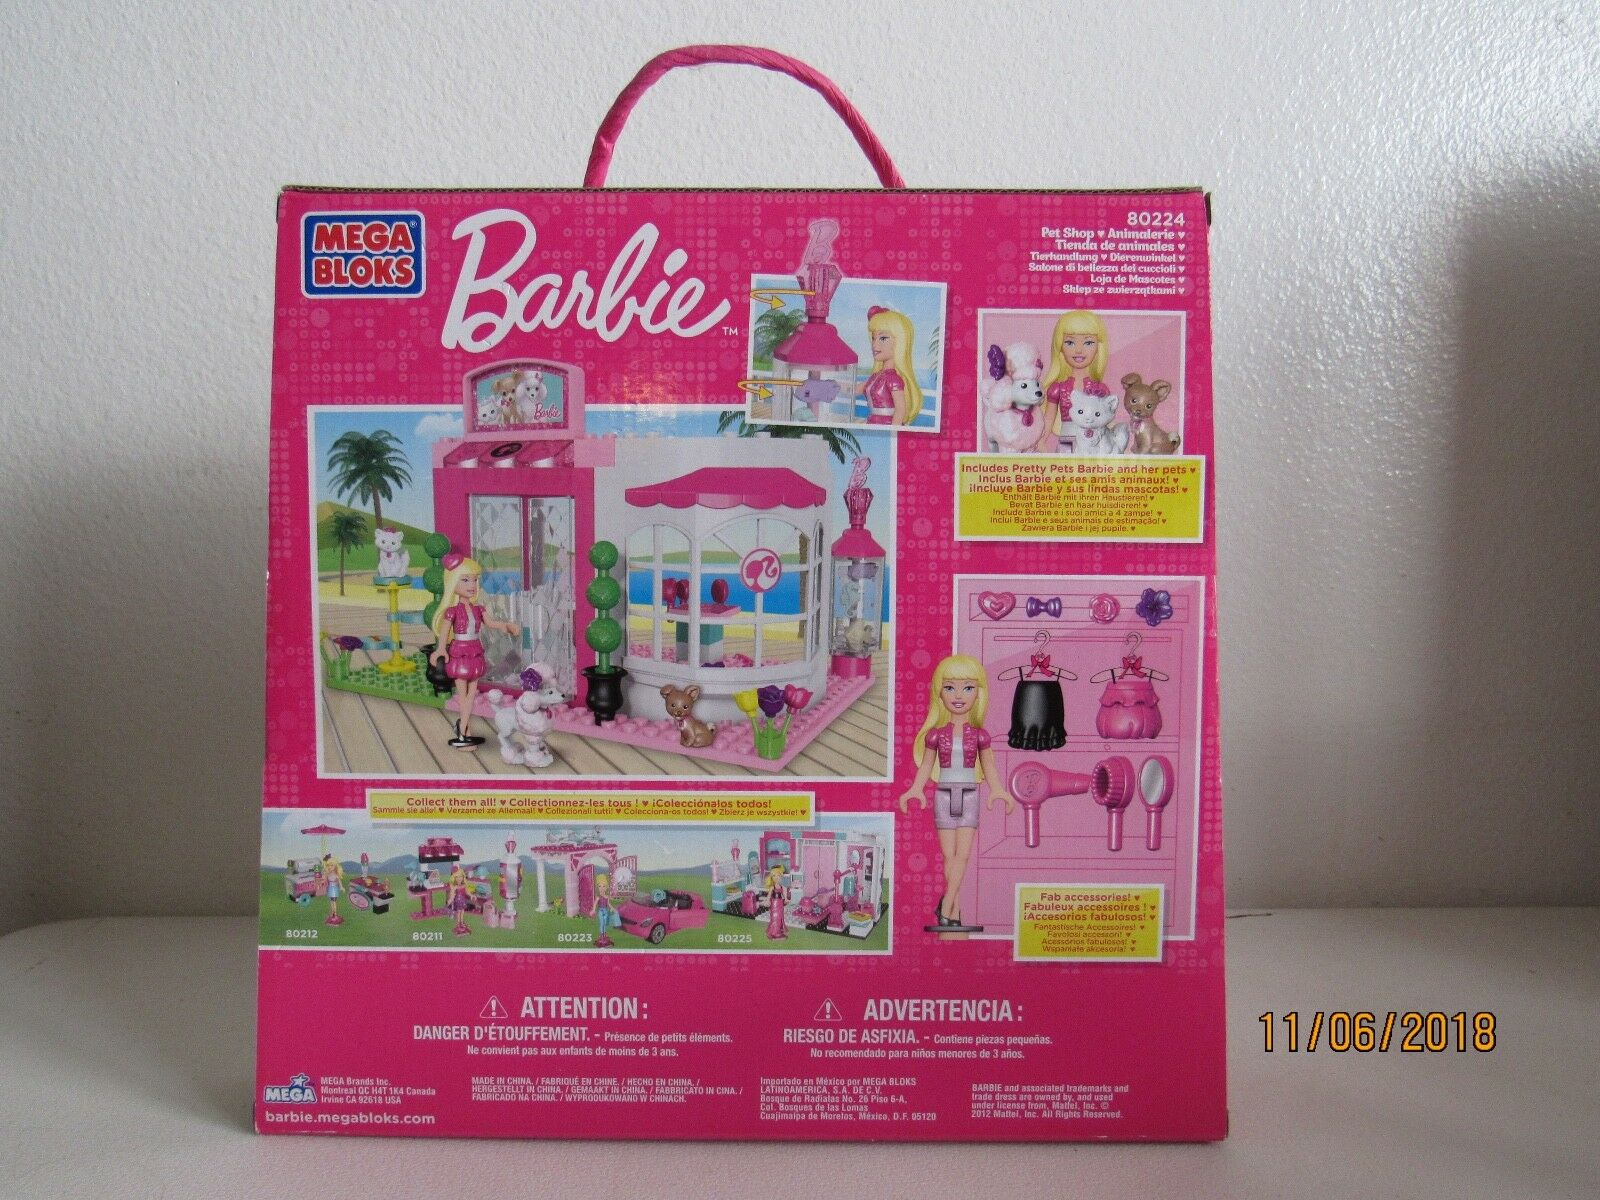 c494d4ee9bd6 ... Mega Bloks Bloks Bloks Barbie Build n Style Pet Shop 80224 NEW eaeba7  ...